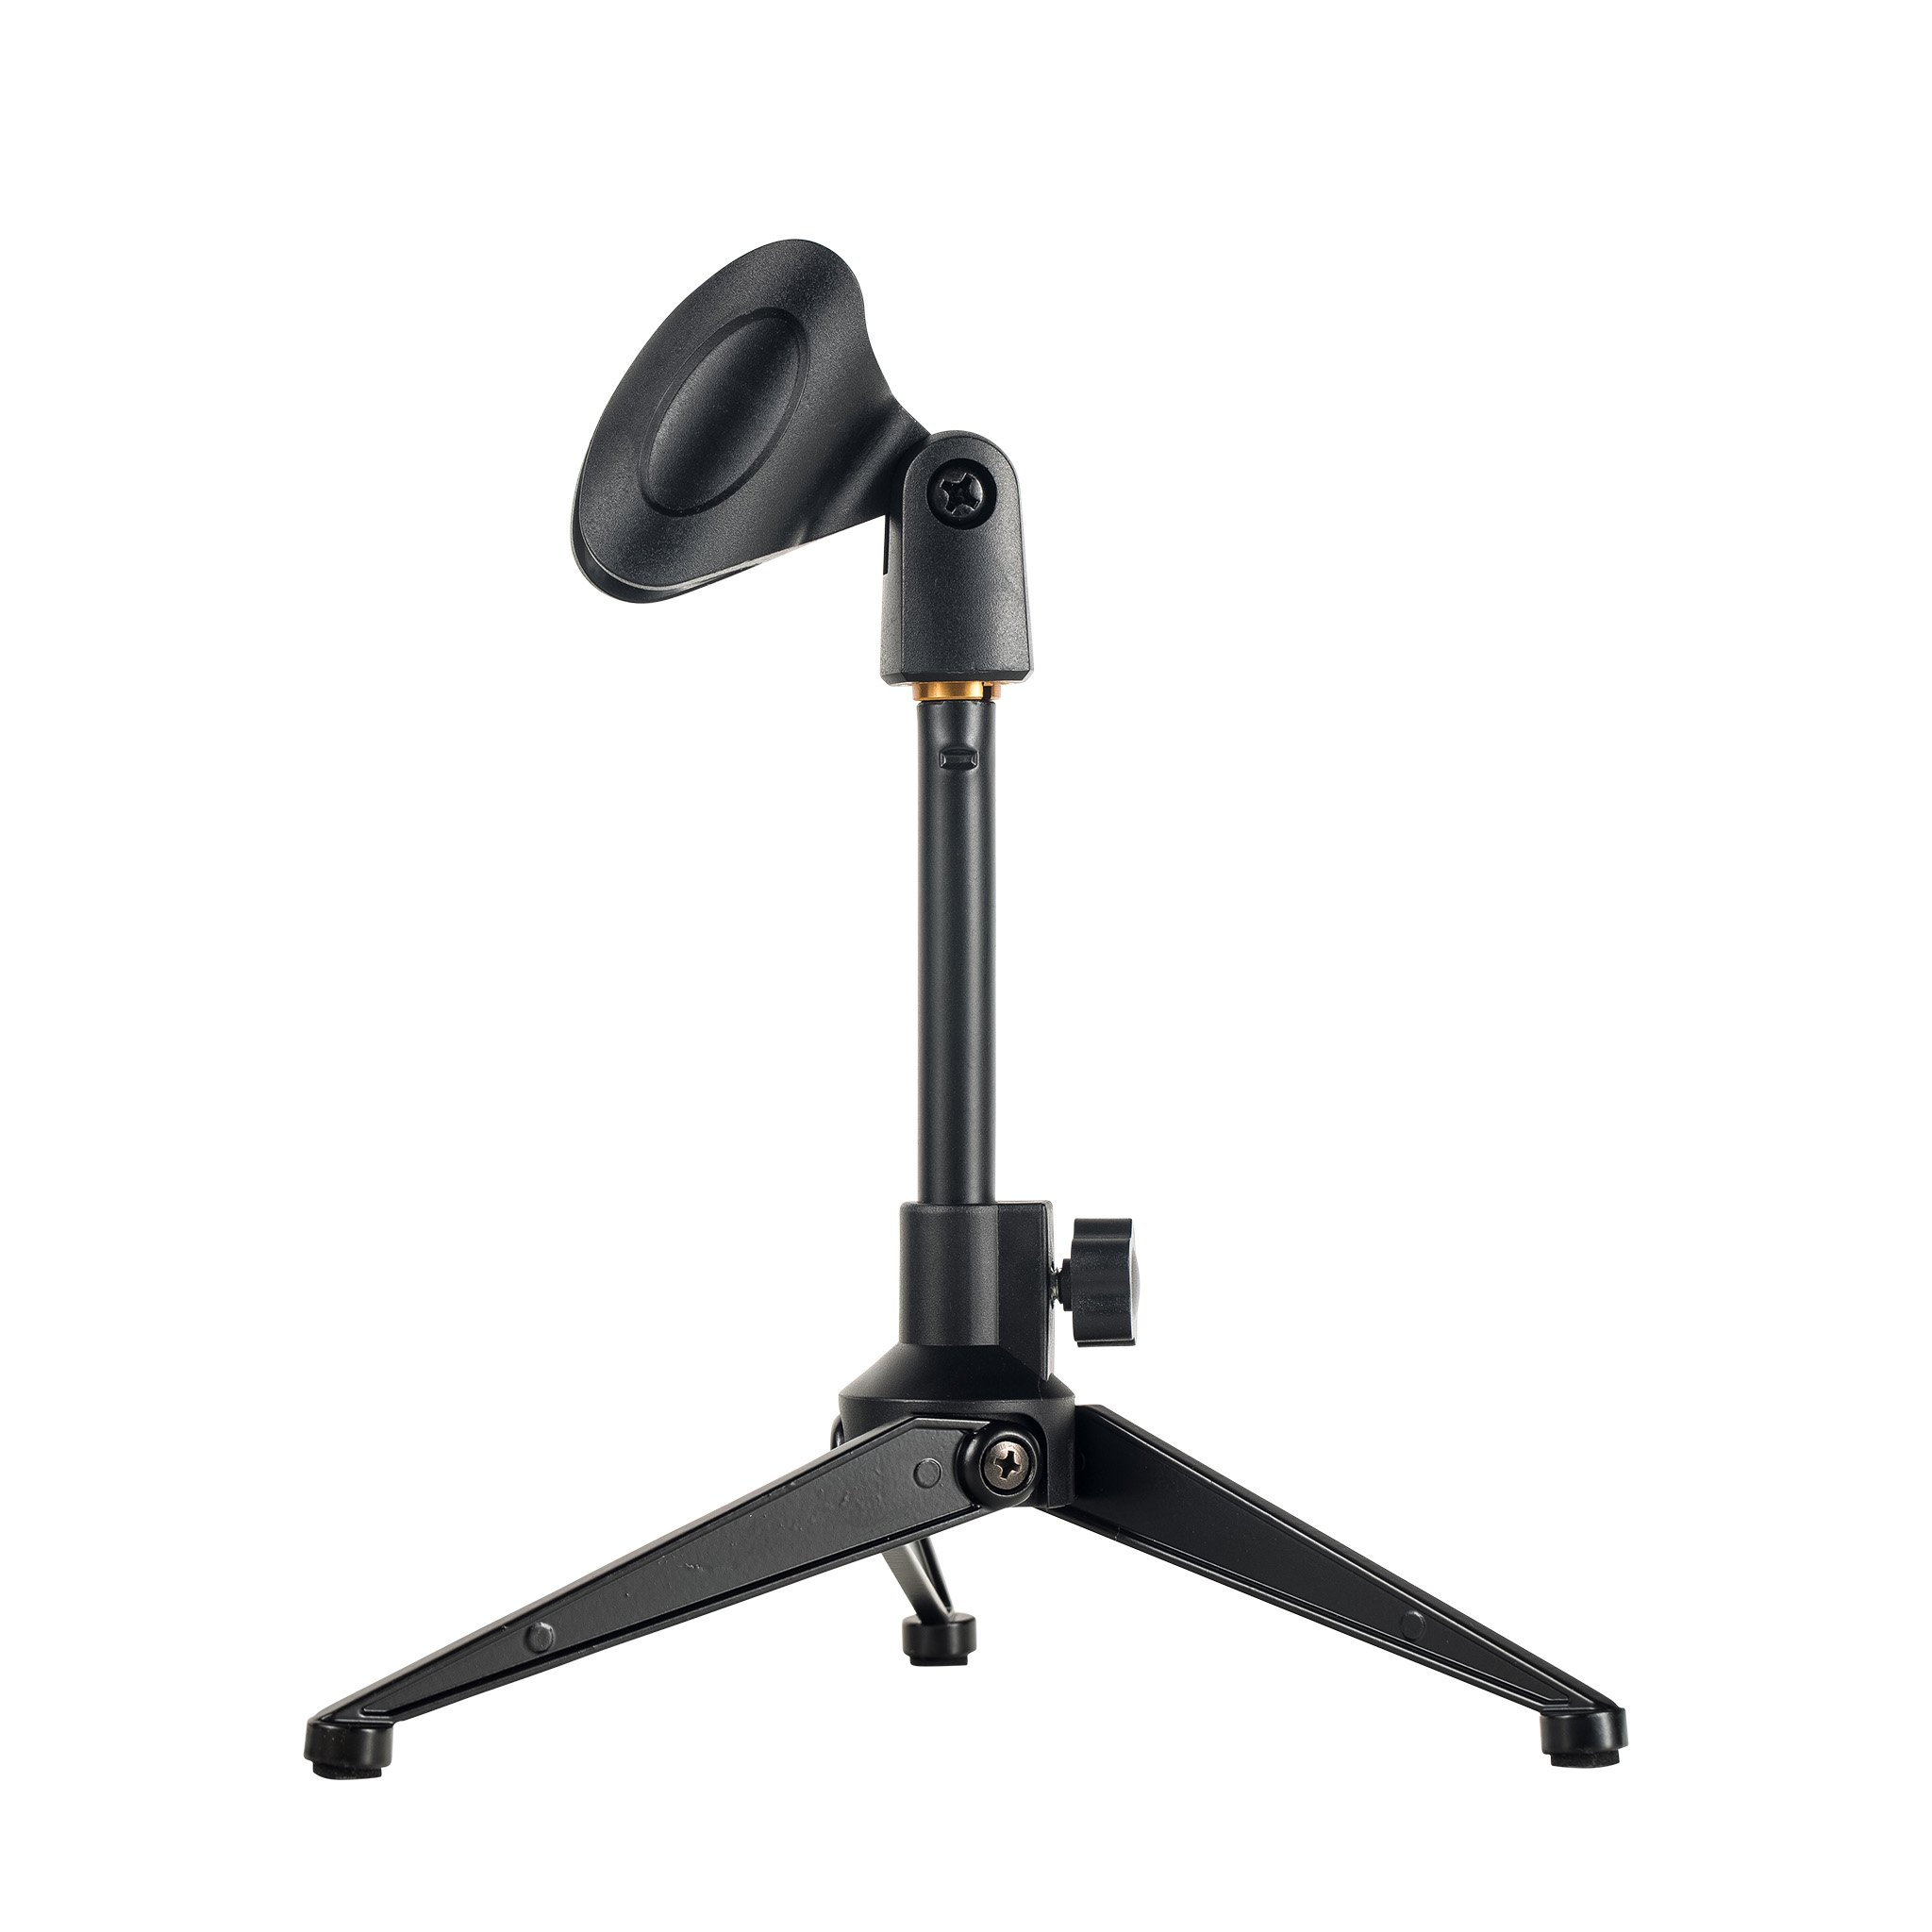 2-Pack Universal Desktop Microphone Stand Portable Adjustable Foldable Desk MIC Stand with Microphone Clip by Bearstar